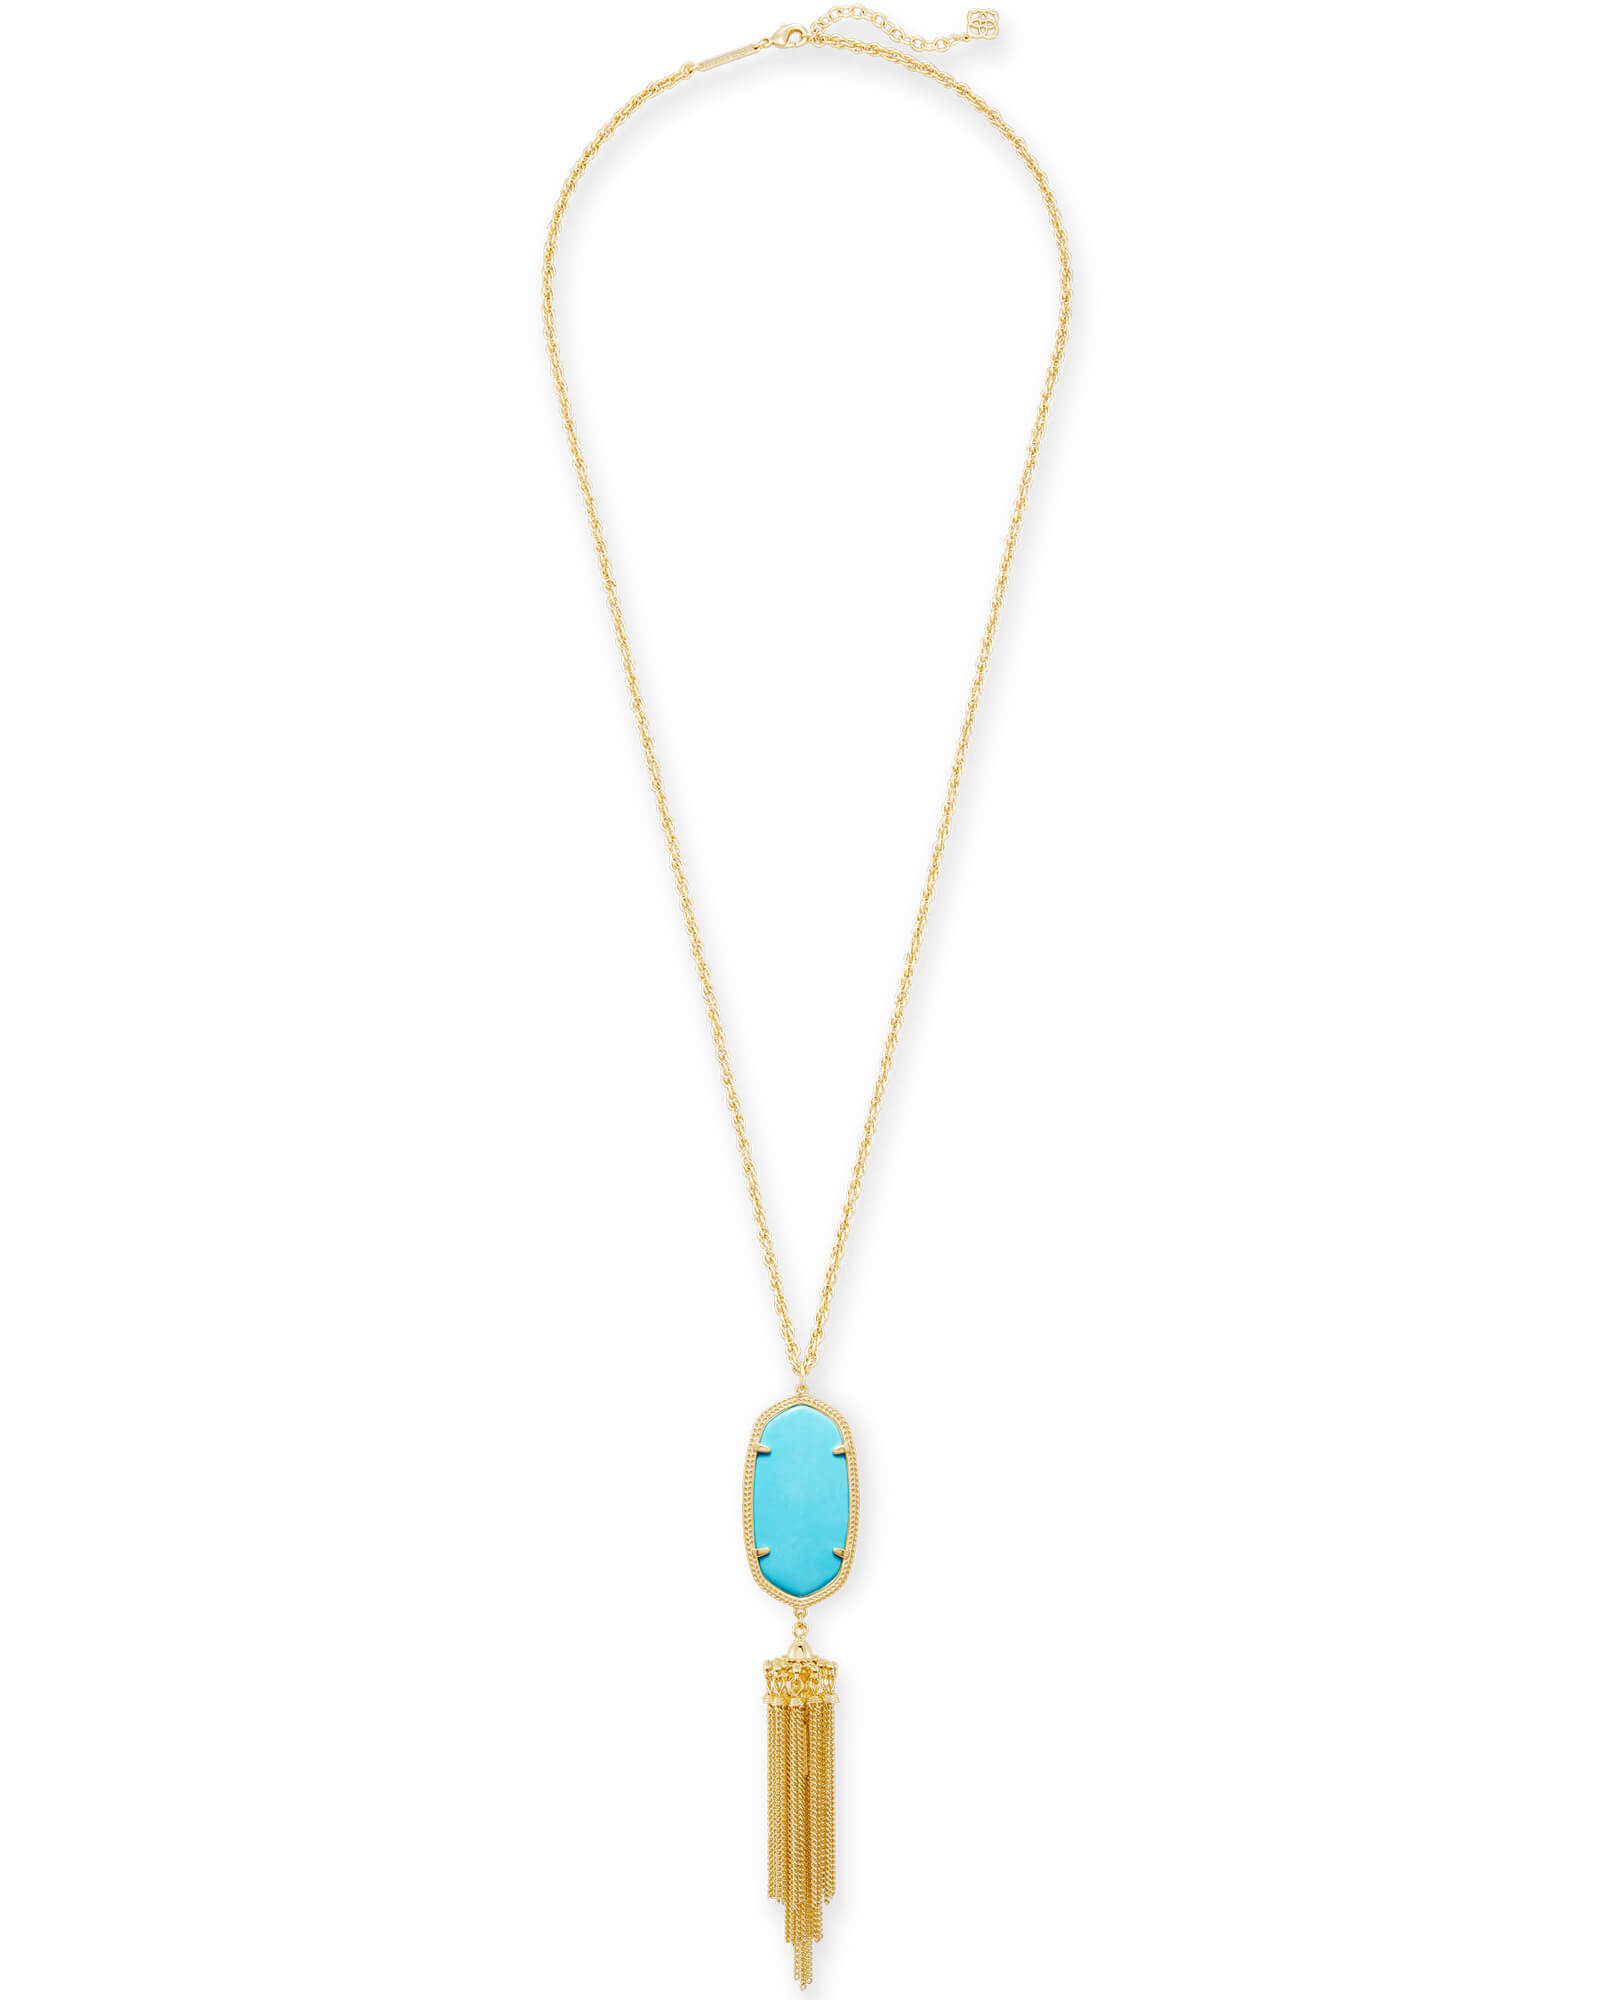 Rayne Gold Long Pendant Necklace in Turquoise